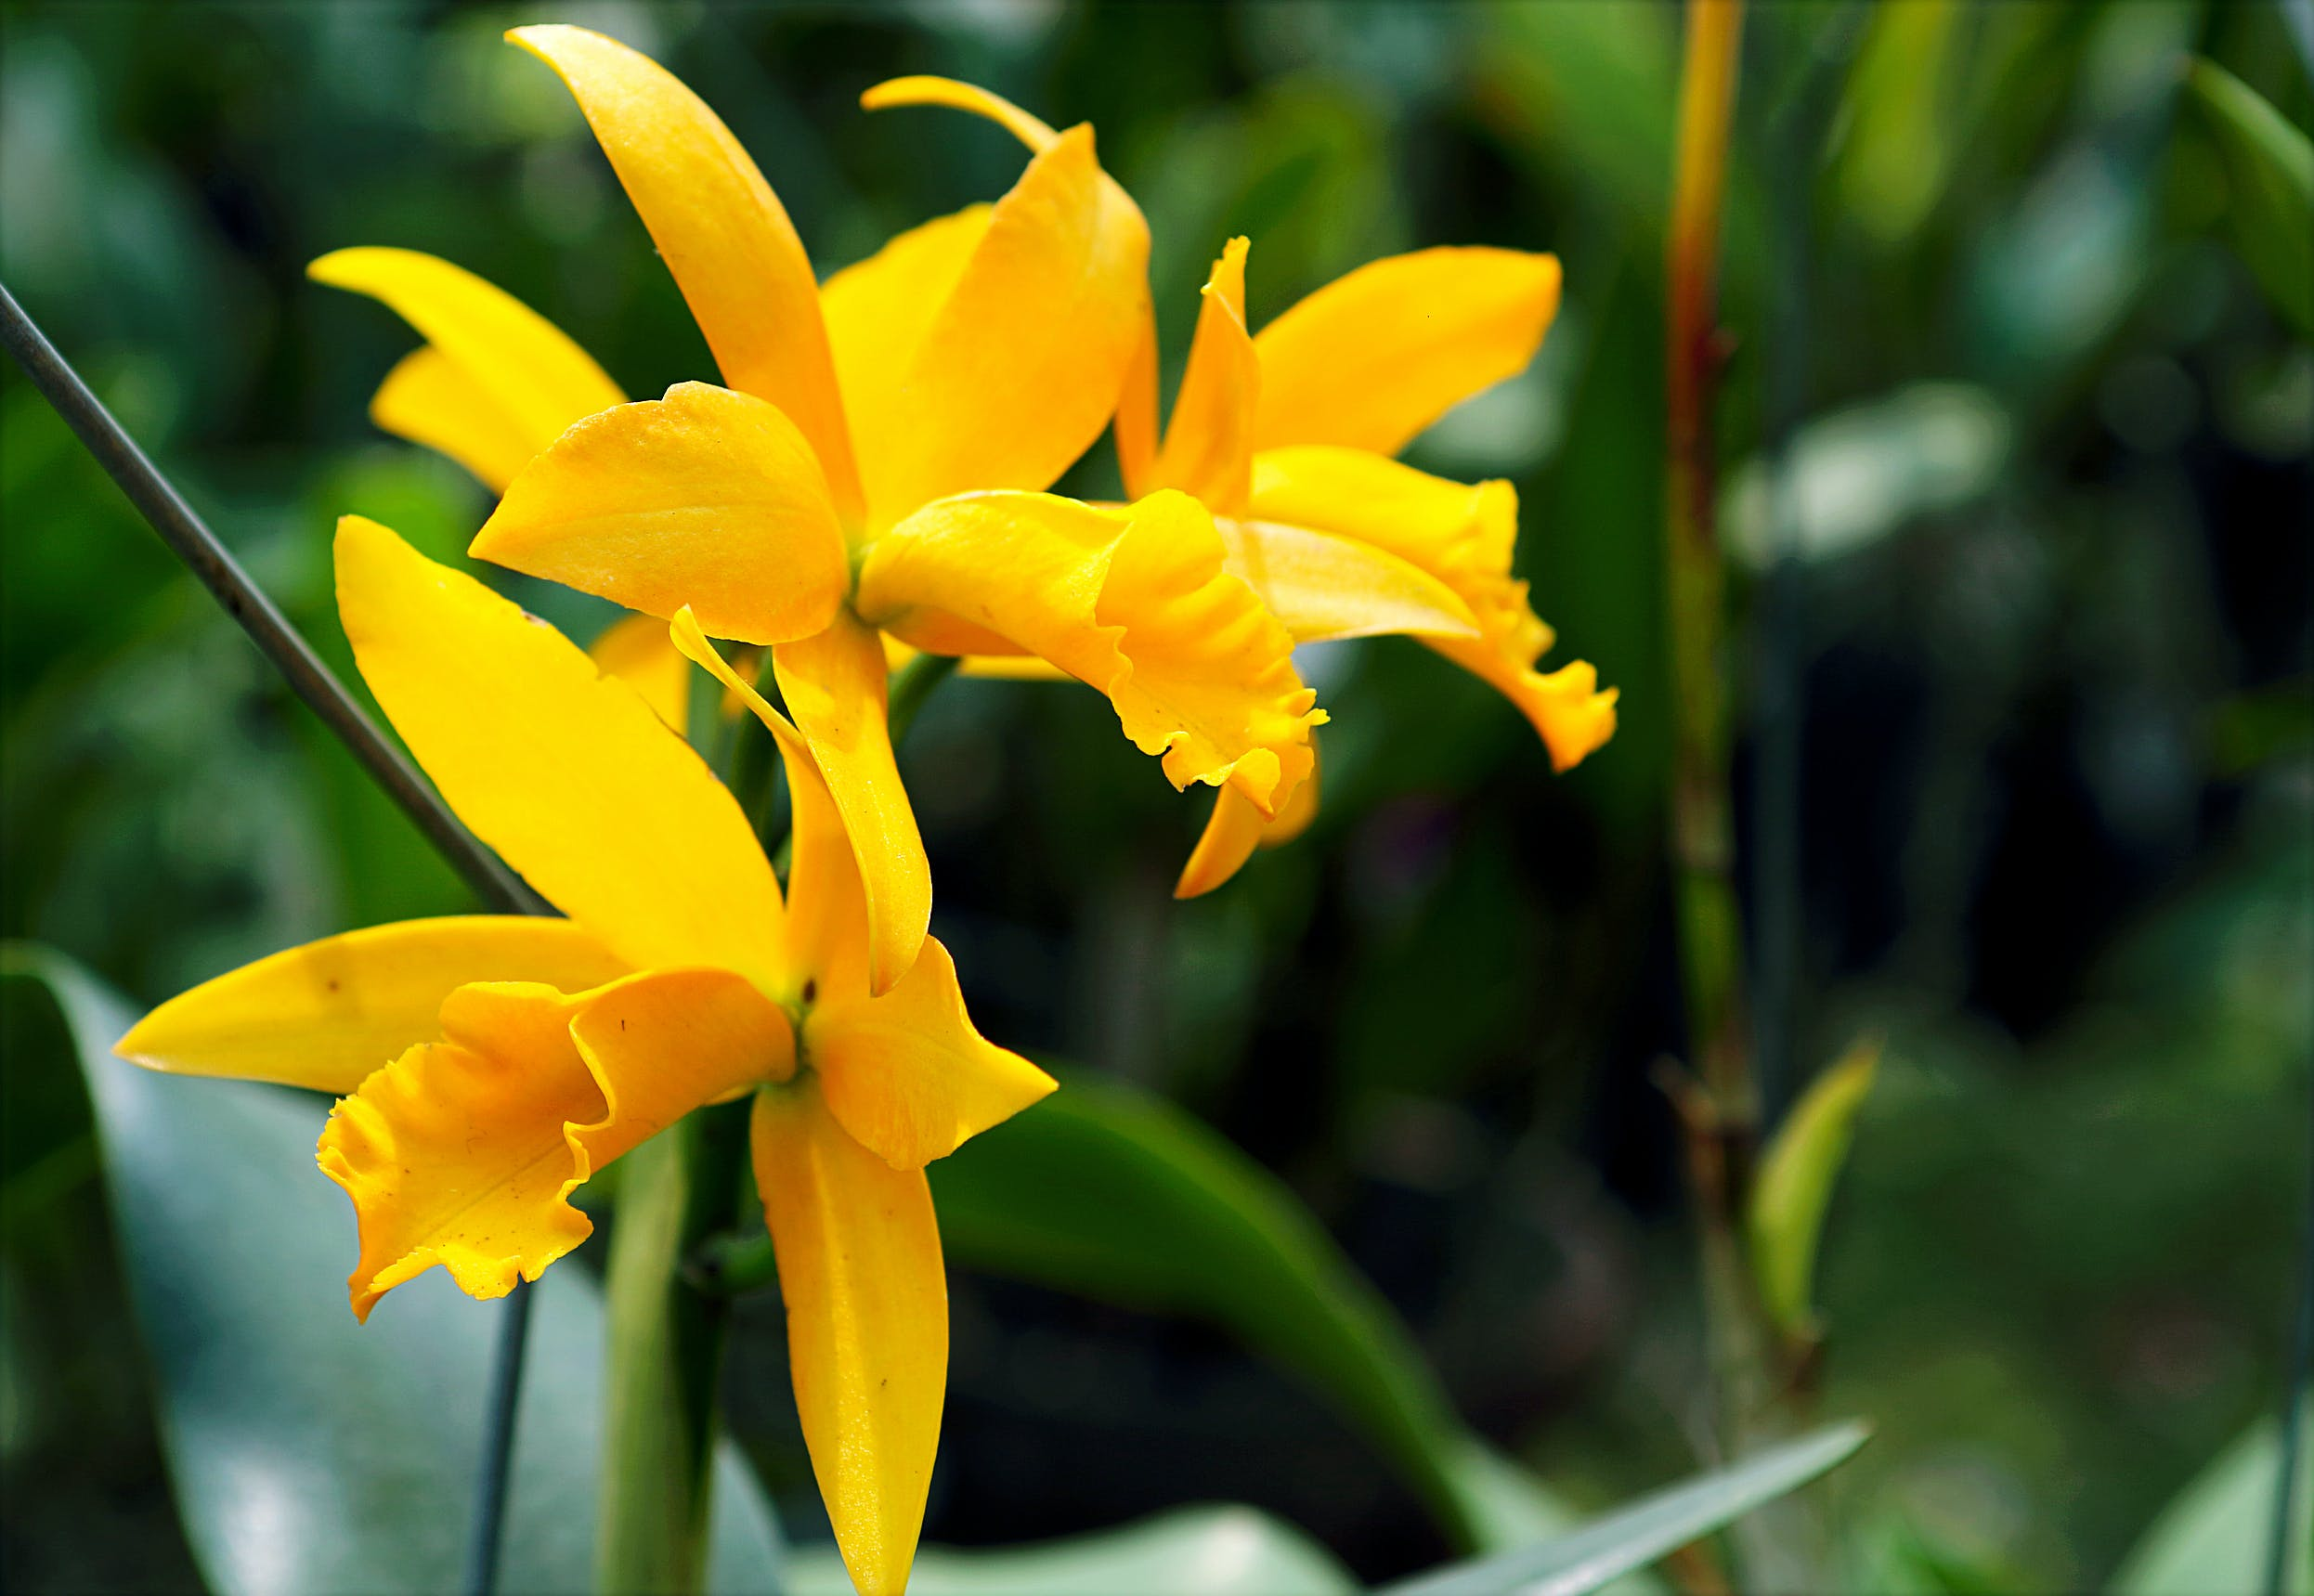 Yellow Orchids in Closeup Photo